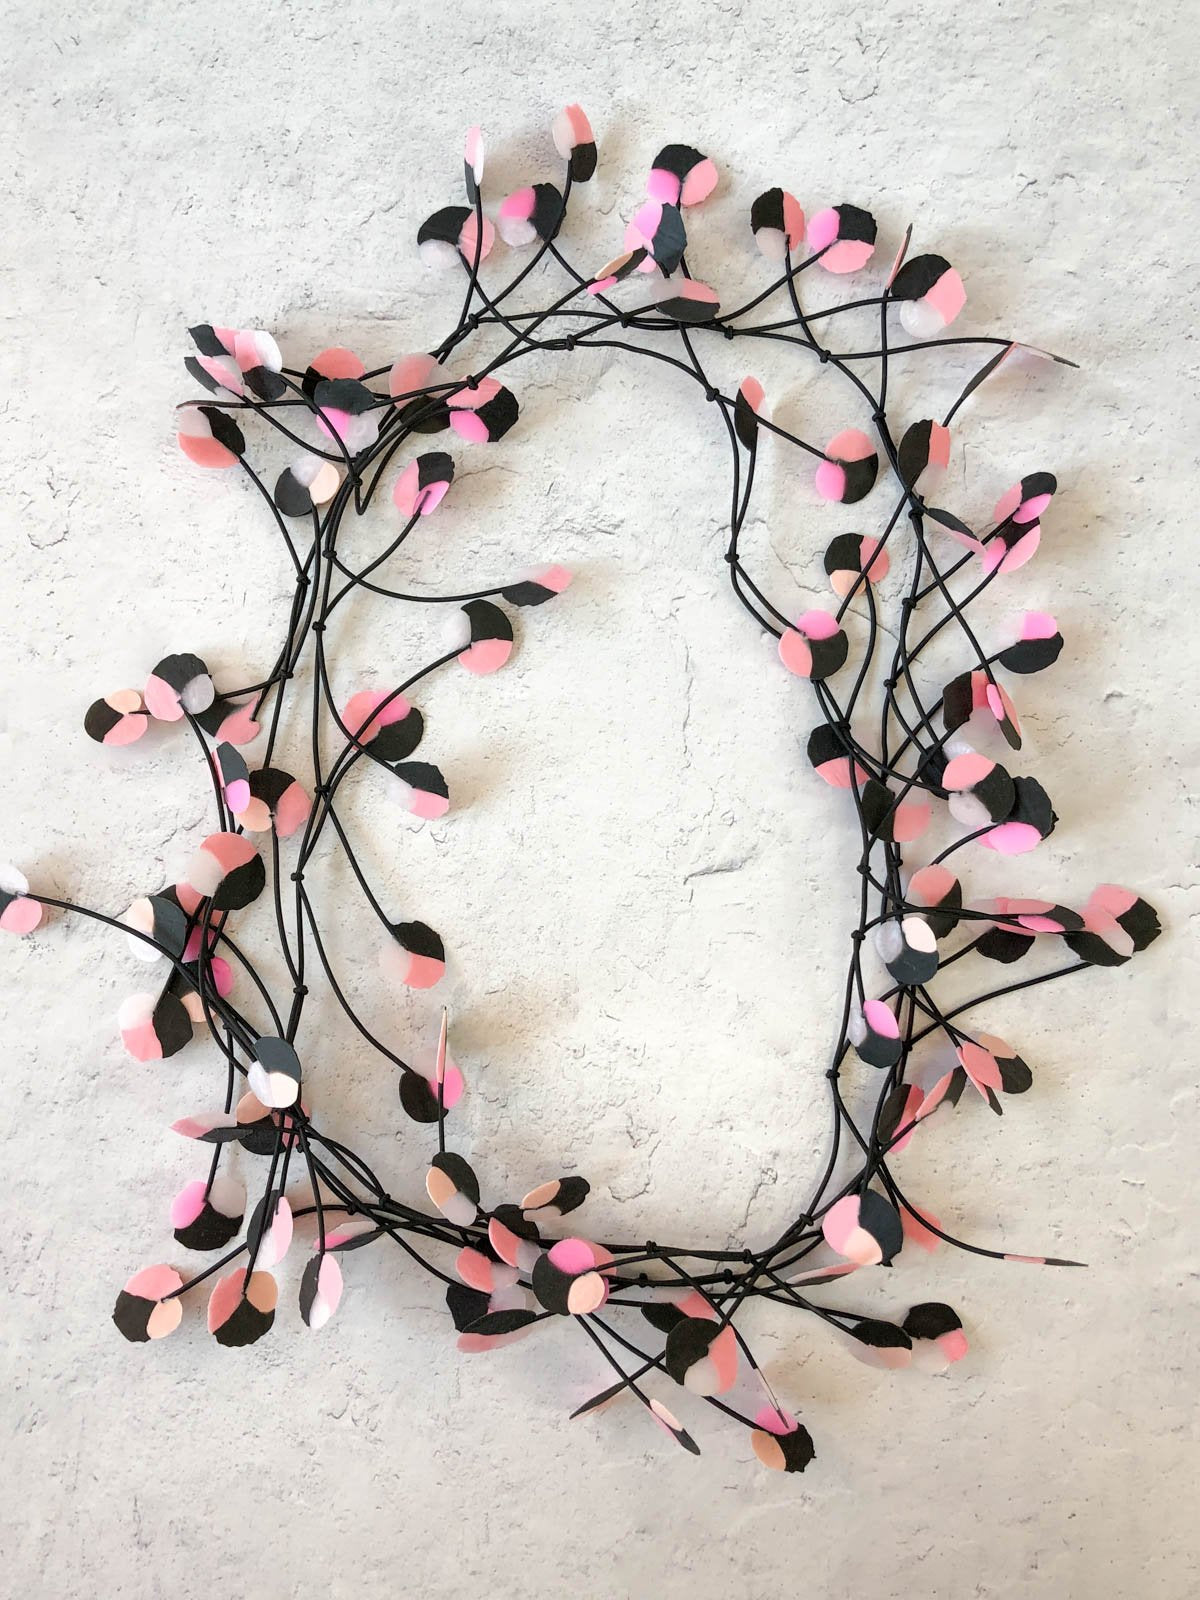 Ekeimenna By Annemieke Broenink - Recycled Wildflower Necklace - Blush Pink